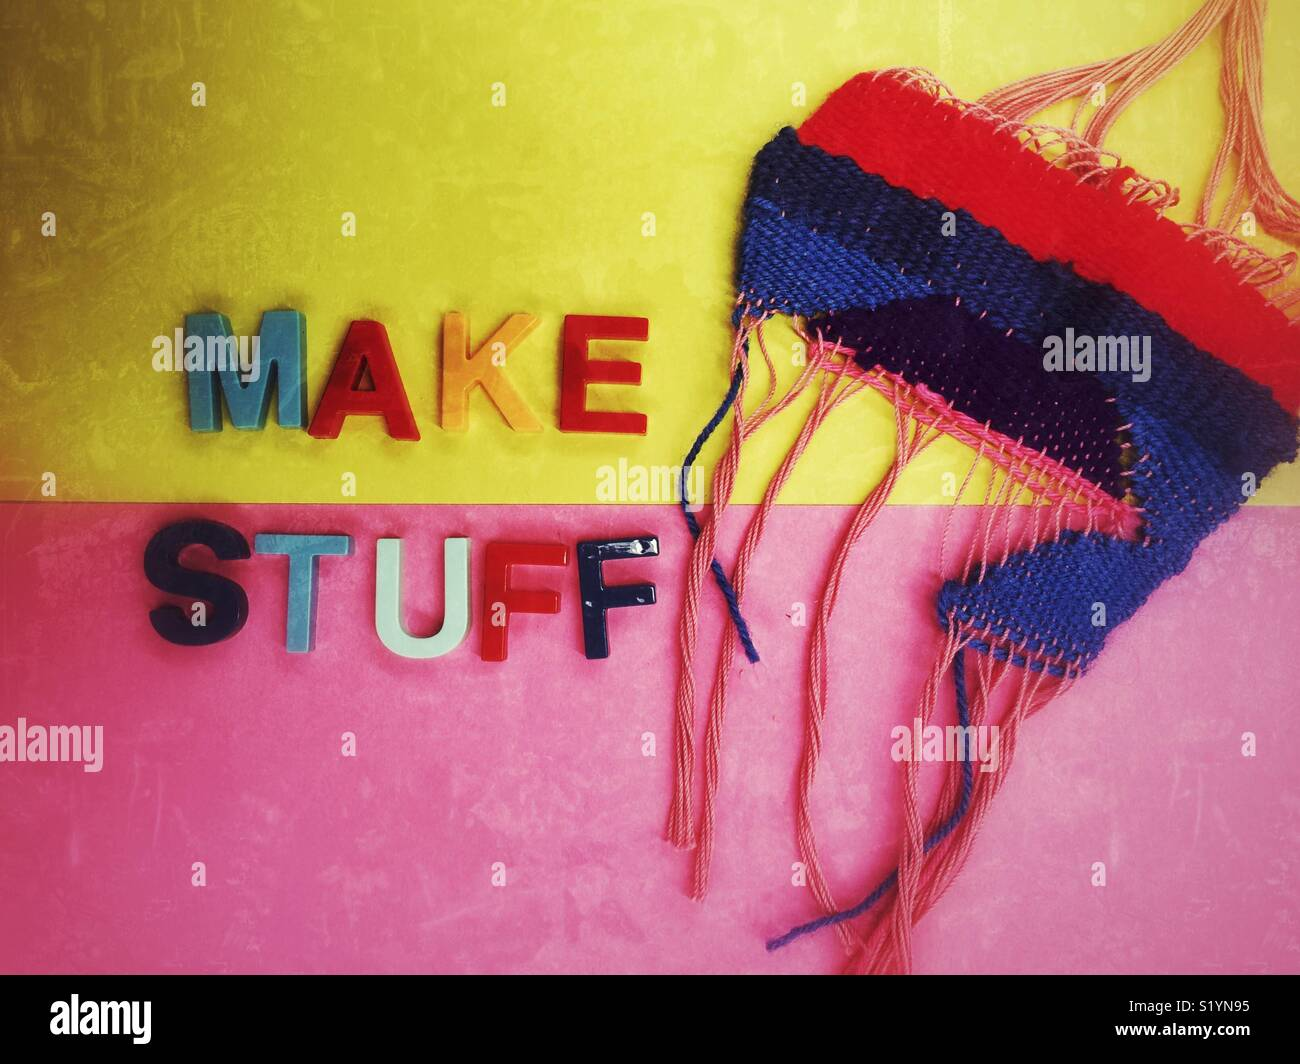 Woven artsy tapestry next to the words Make Stuff in magnetic fridge letters on duotone yellow and pink background - Stock Image